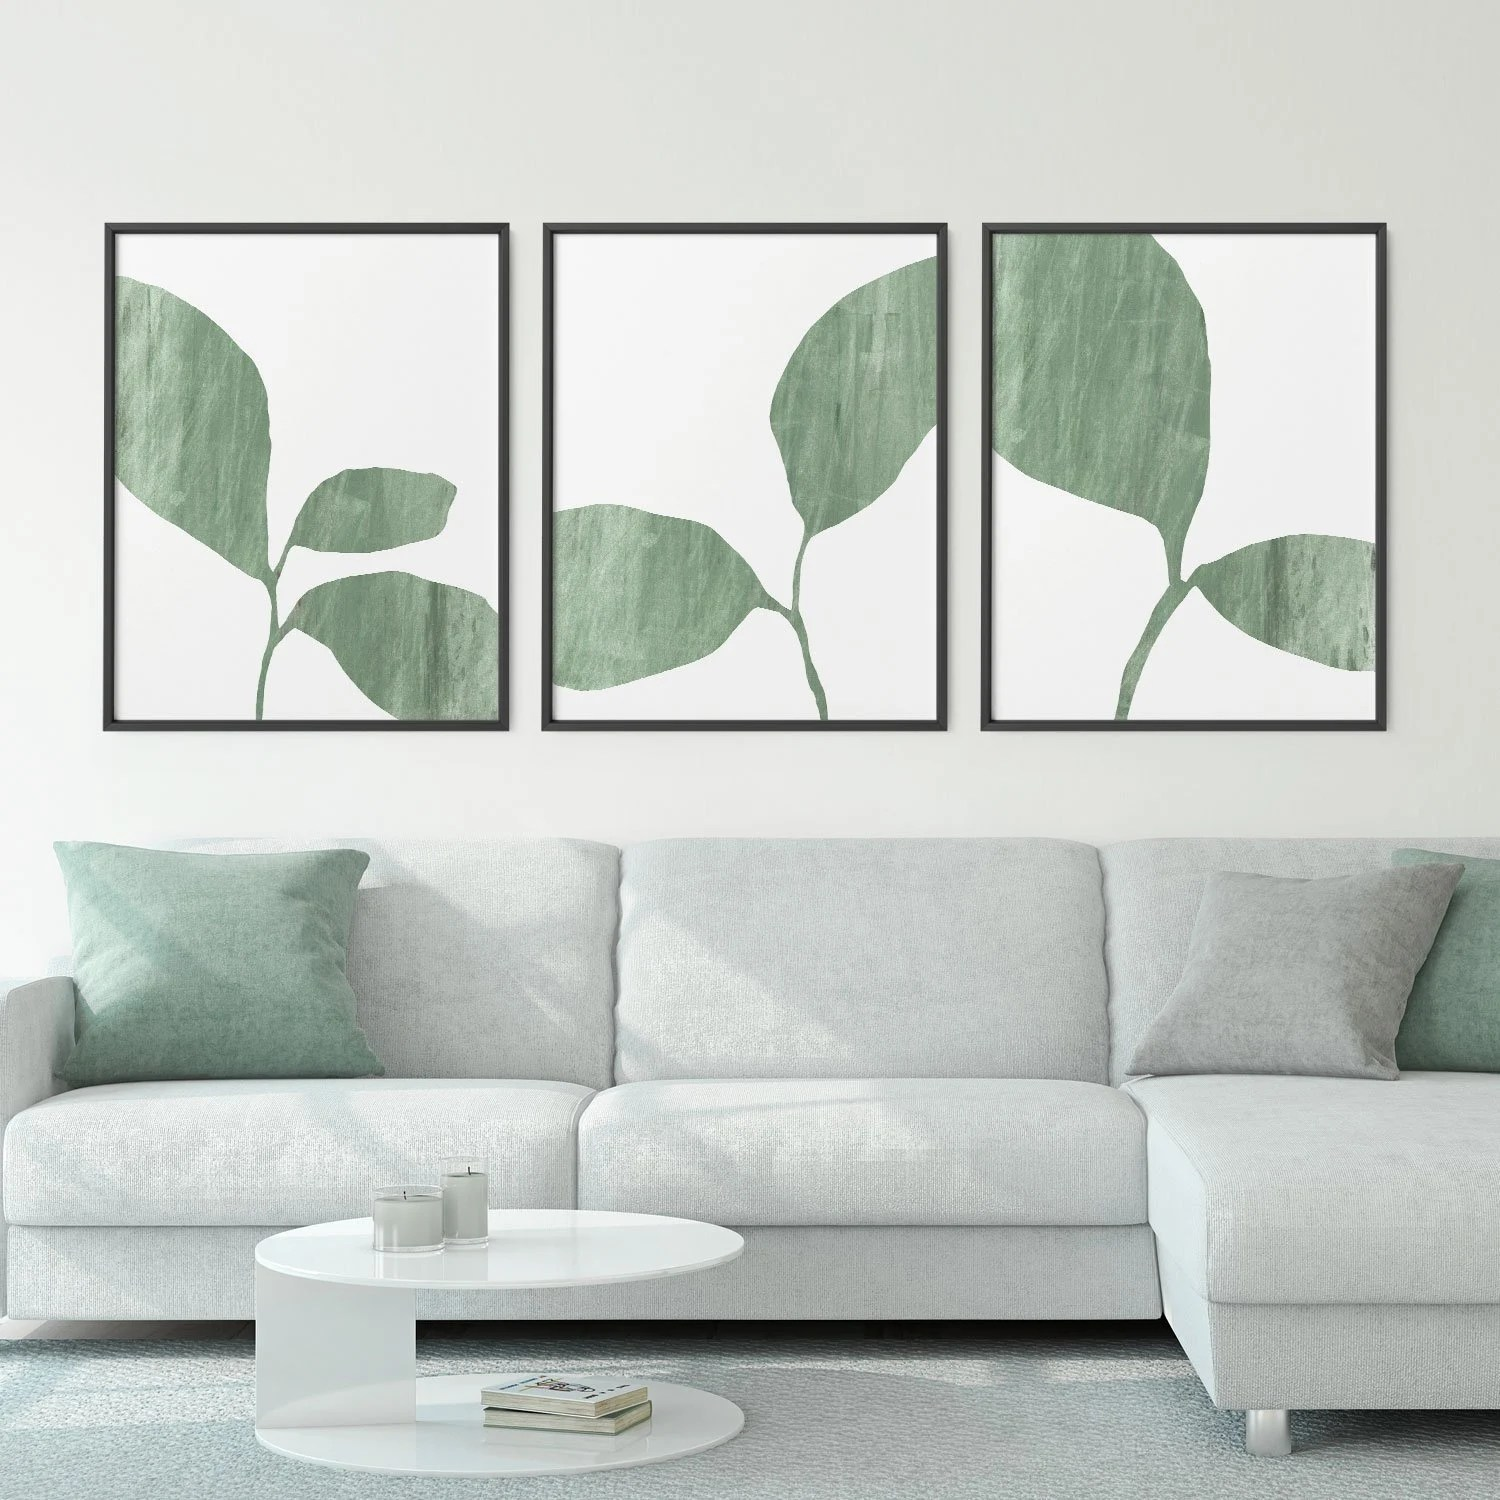 Olive Green Wall Decor Olive Green Botanical Prints Set Of 3 Prints Above Bed Decor Farmhouse Wall Decor Set Plant Prints Set